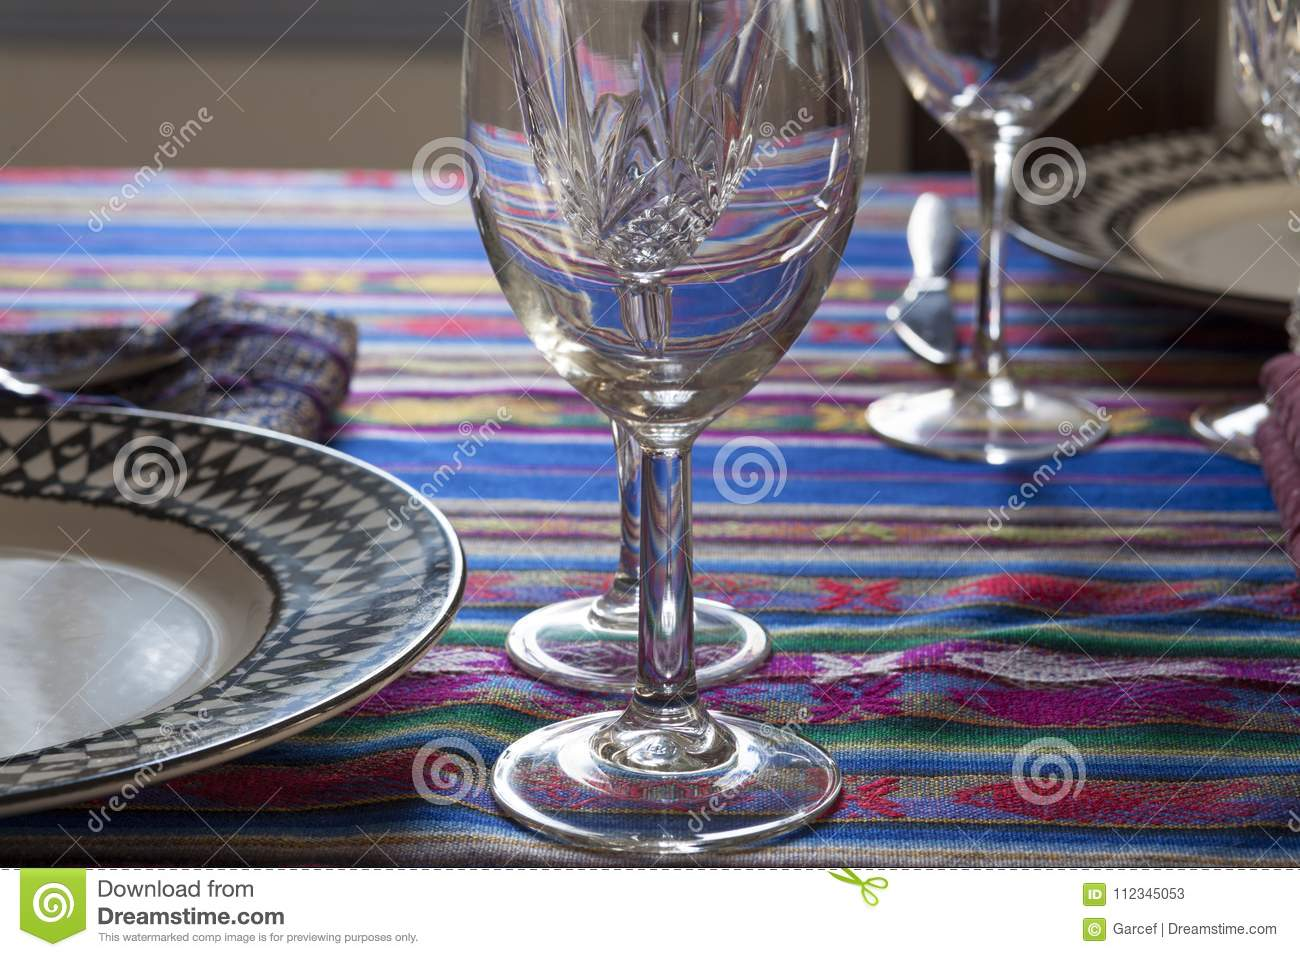 Table Setting With Plates And Glassware Stock Image - Image of table ...